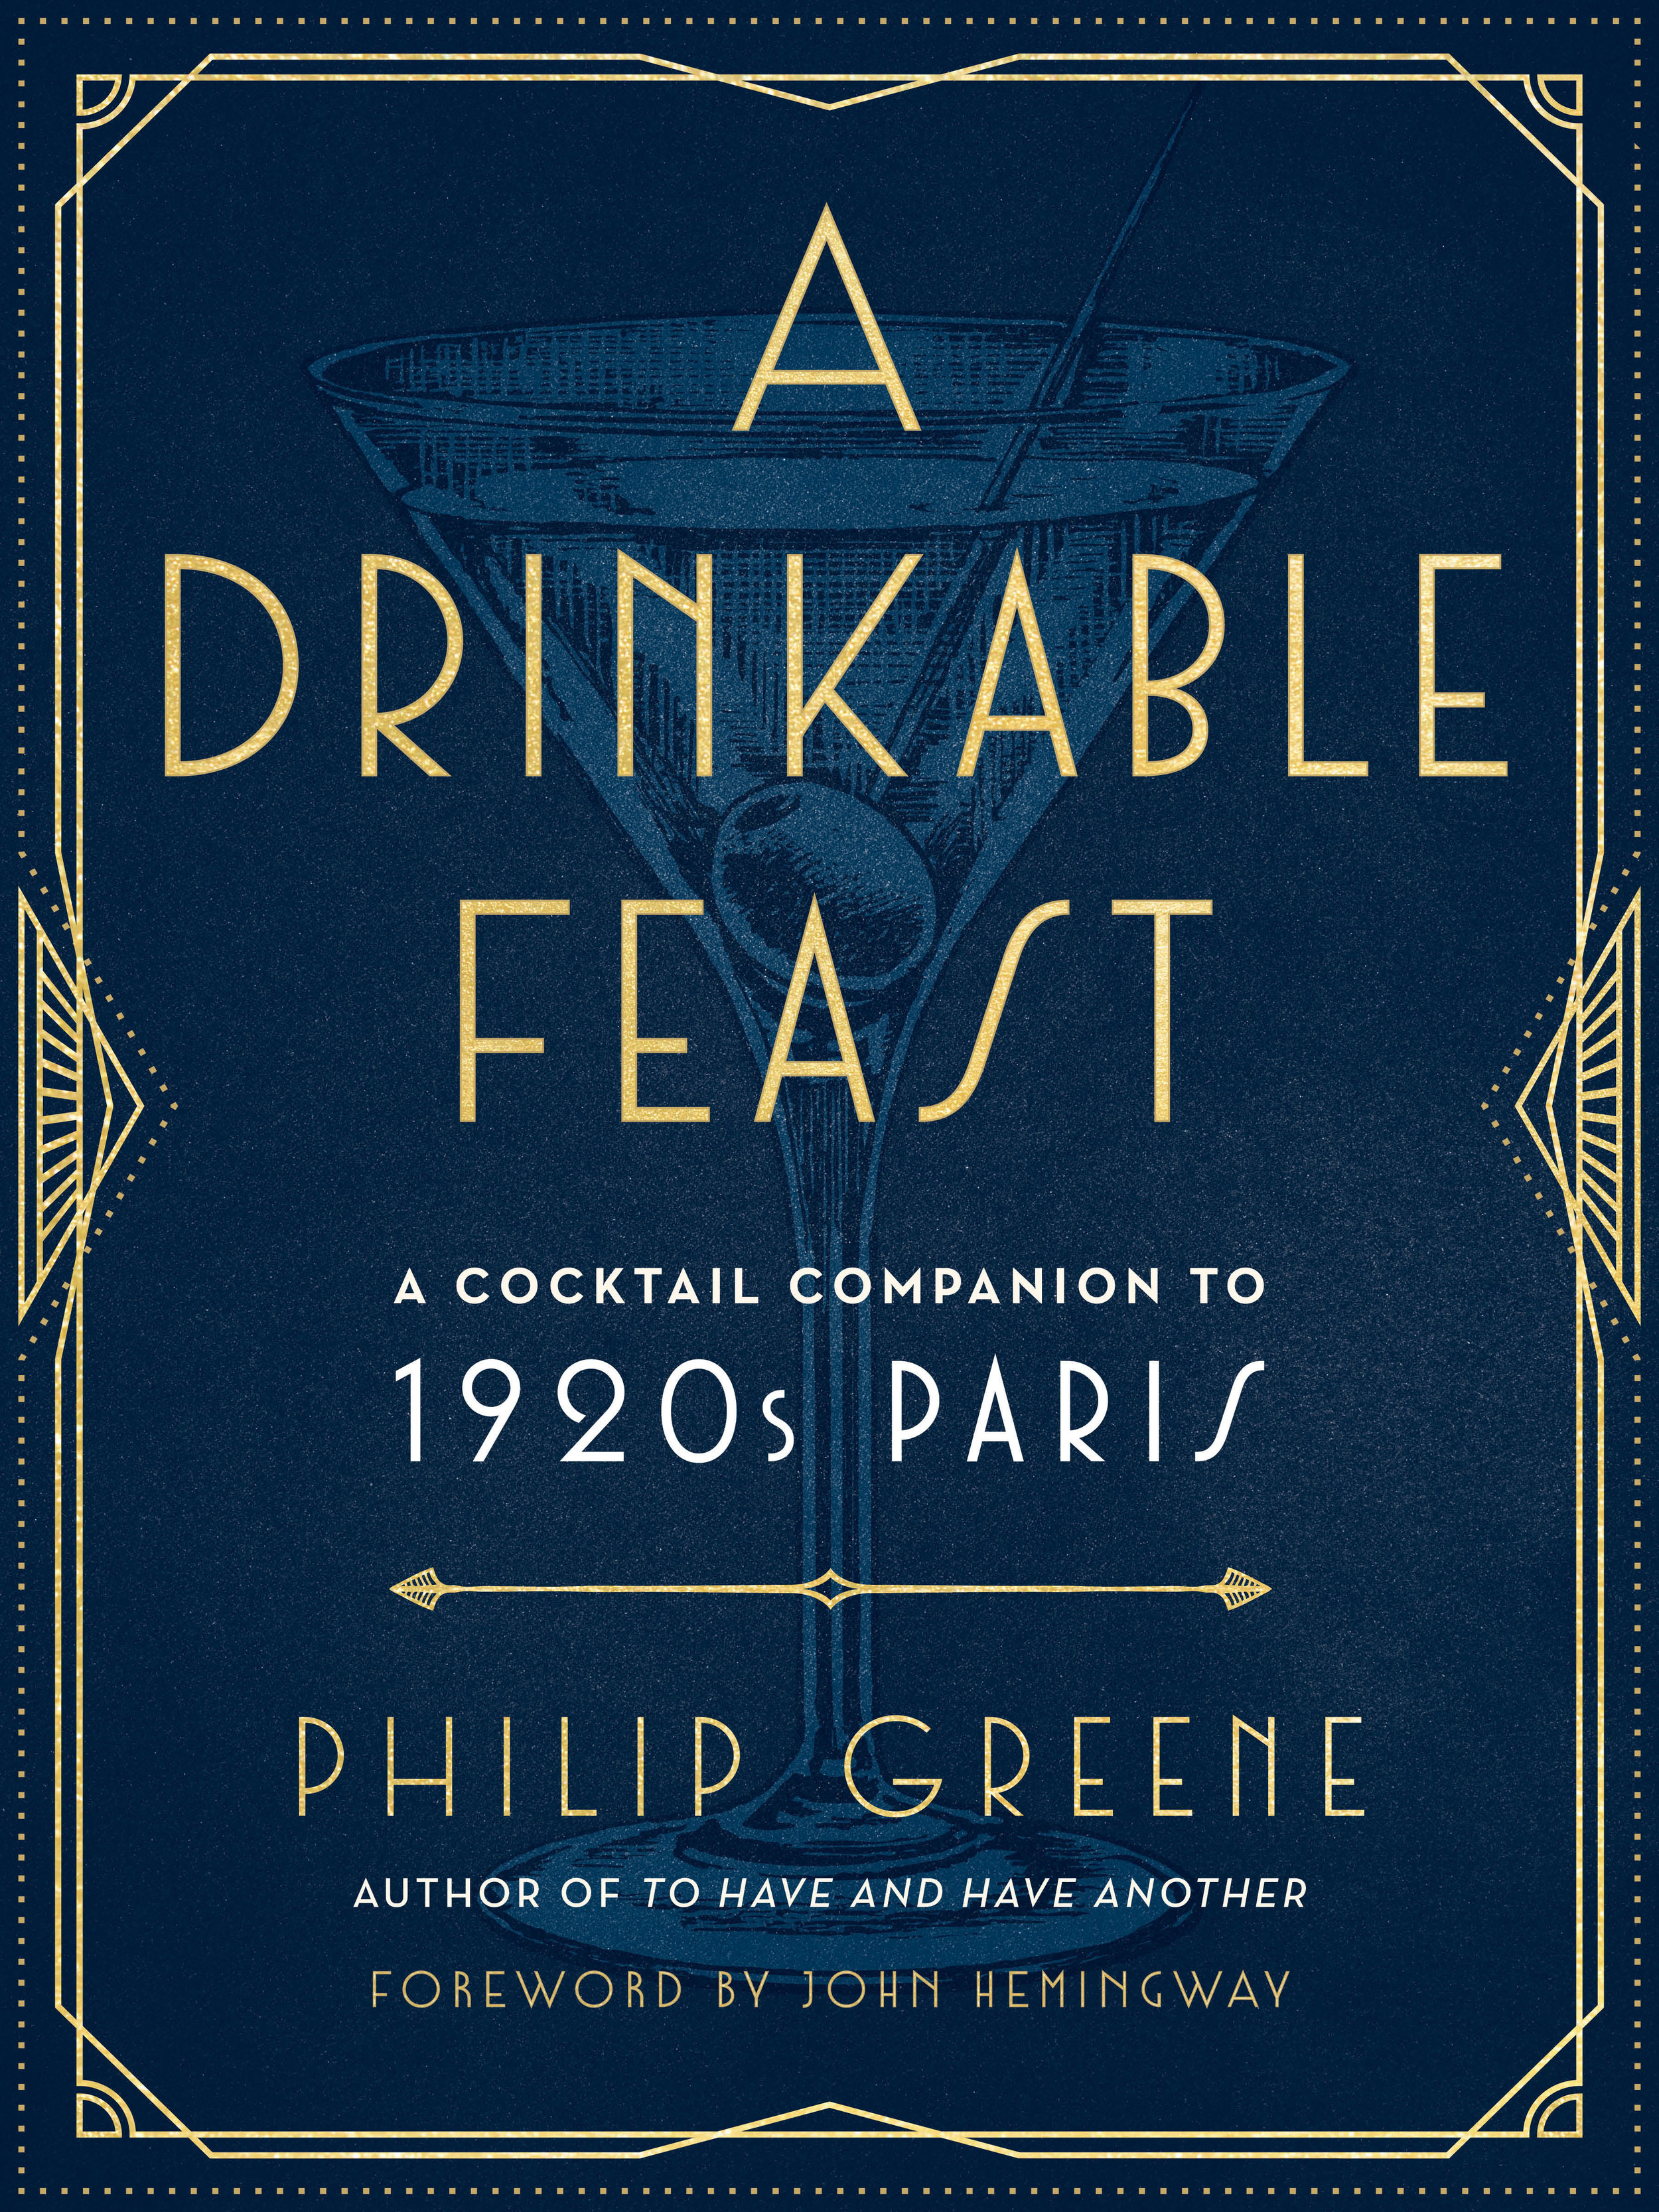 A DRINKABLE FEAST hi-res cover art.jpg